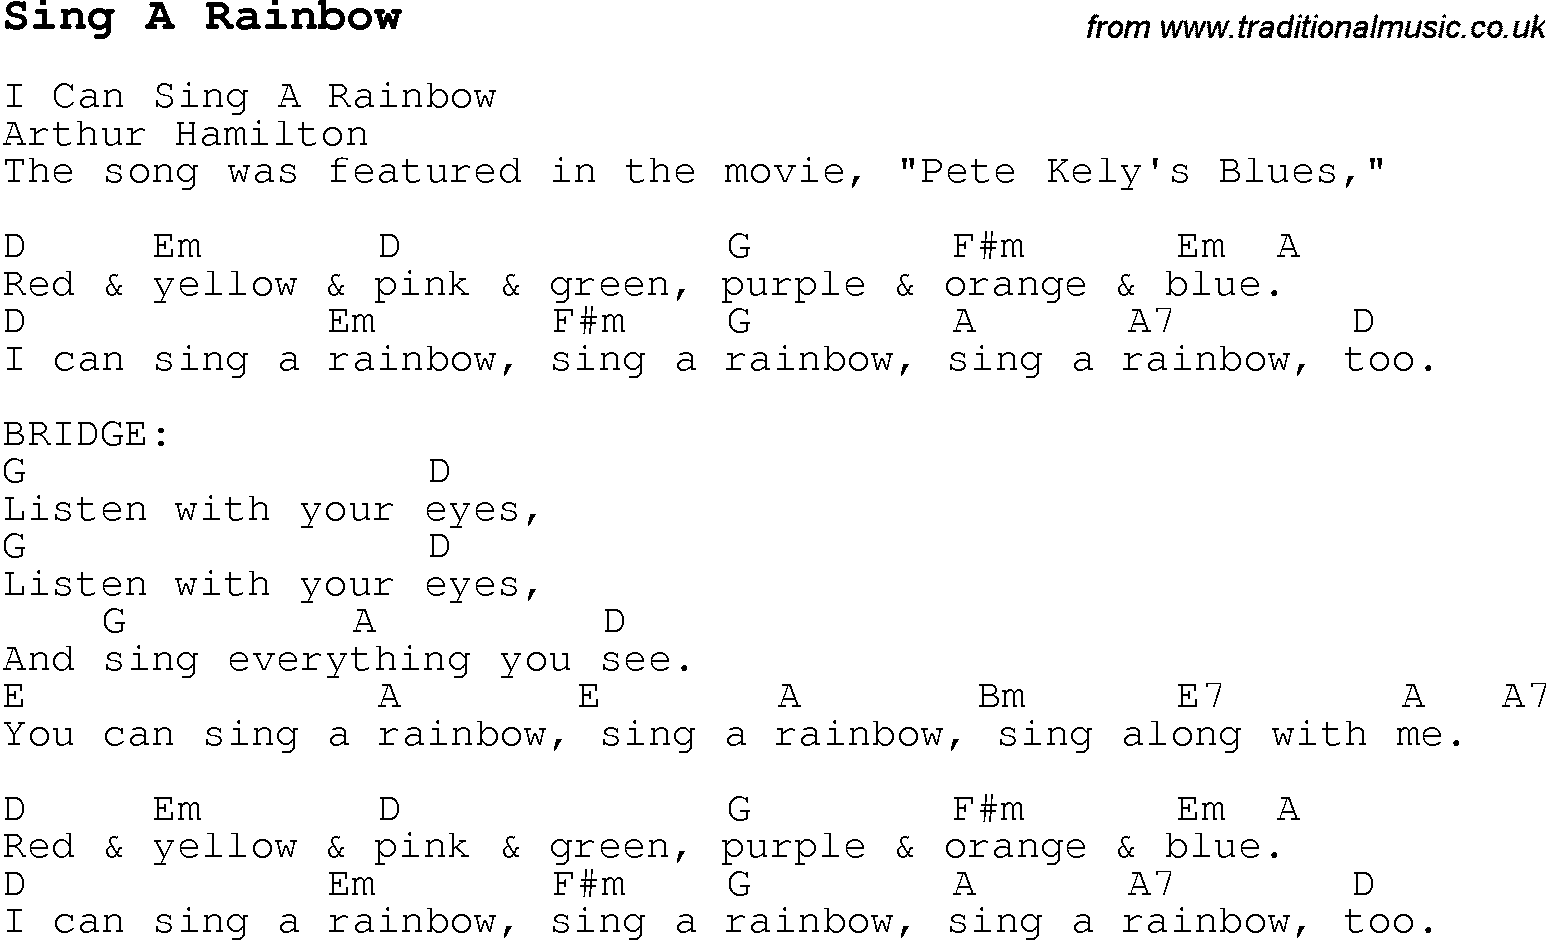 Childrens Songs And Nursery Rhymes Lyrics With Easy Chords For Sing